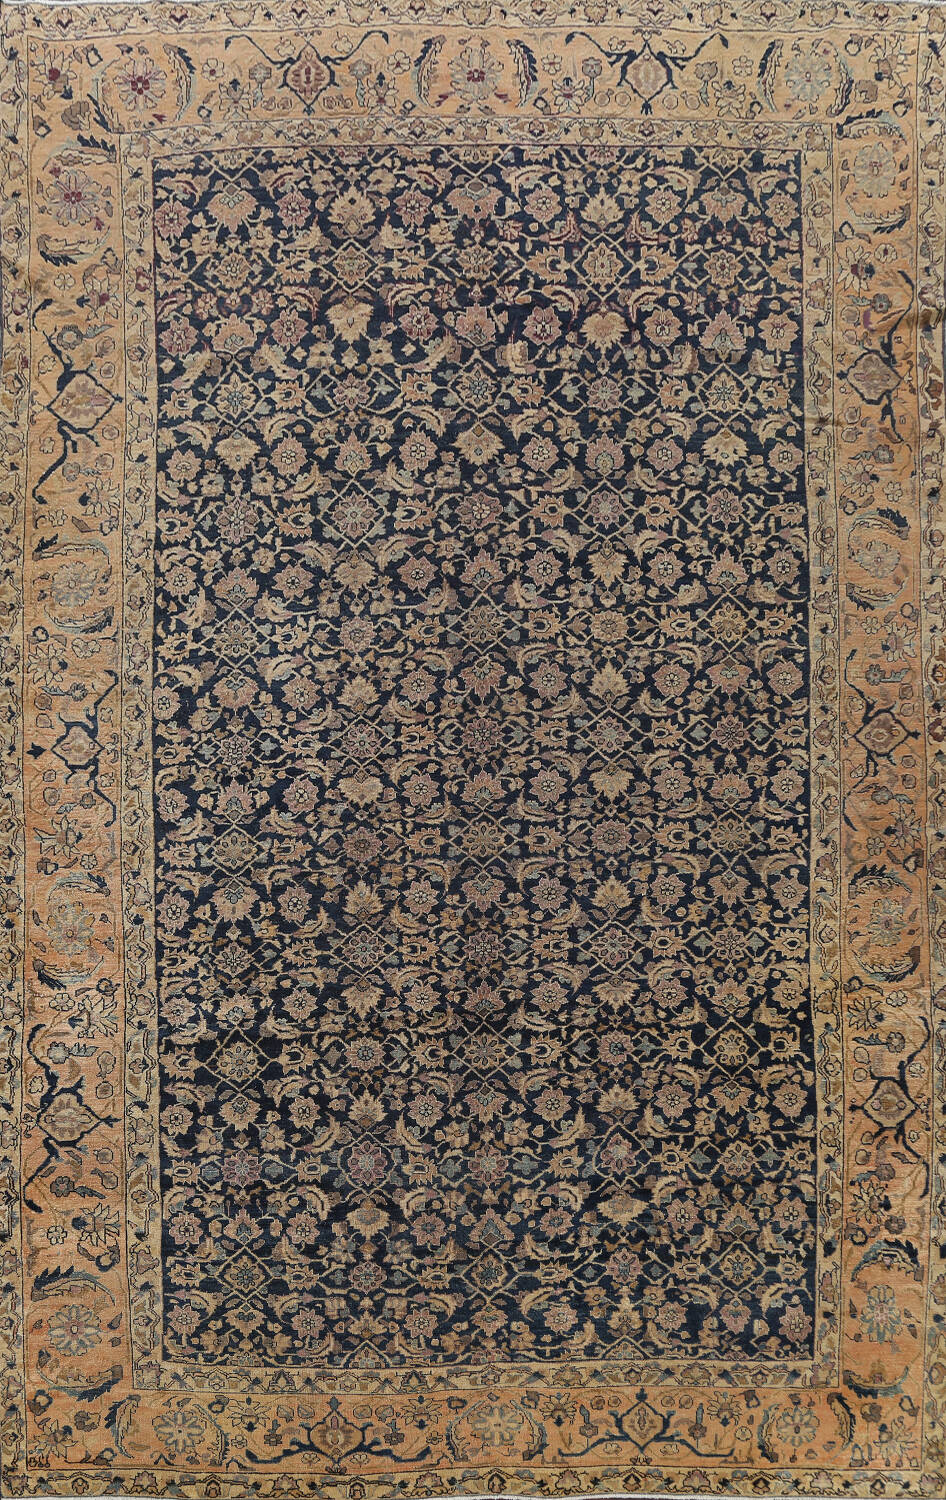 Pre-1900 Antique Vegetable Dye Malayer Persian Area Rug 9x12 image 1